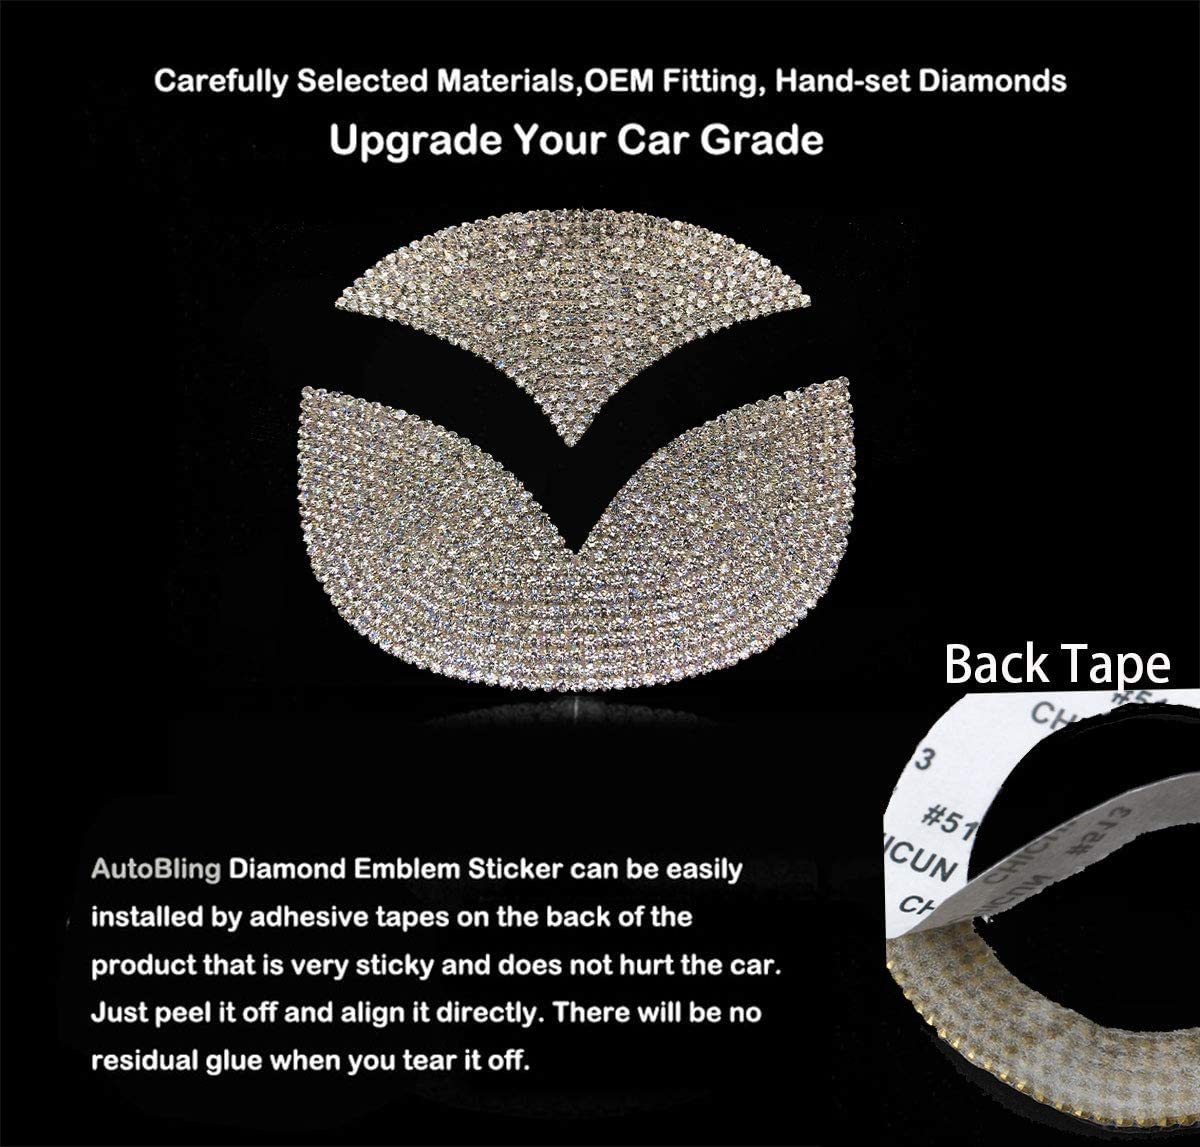 Bling Bling Car Steering Wheel Emblem Decorative Diamond Accessories Sticker Compatible With Ford,DIY Bling Car Steering Wheel Emblem Bling Accessories